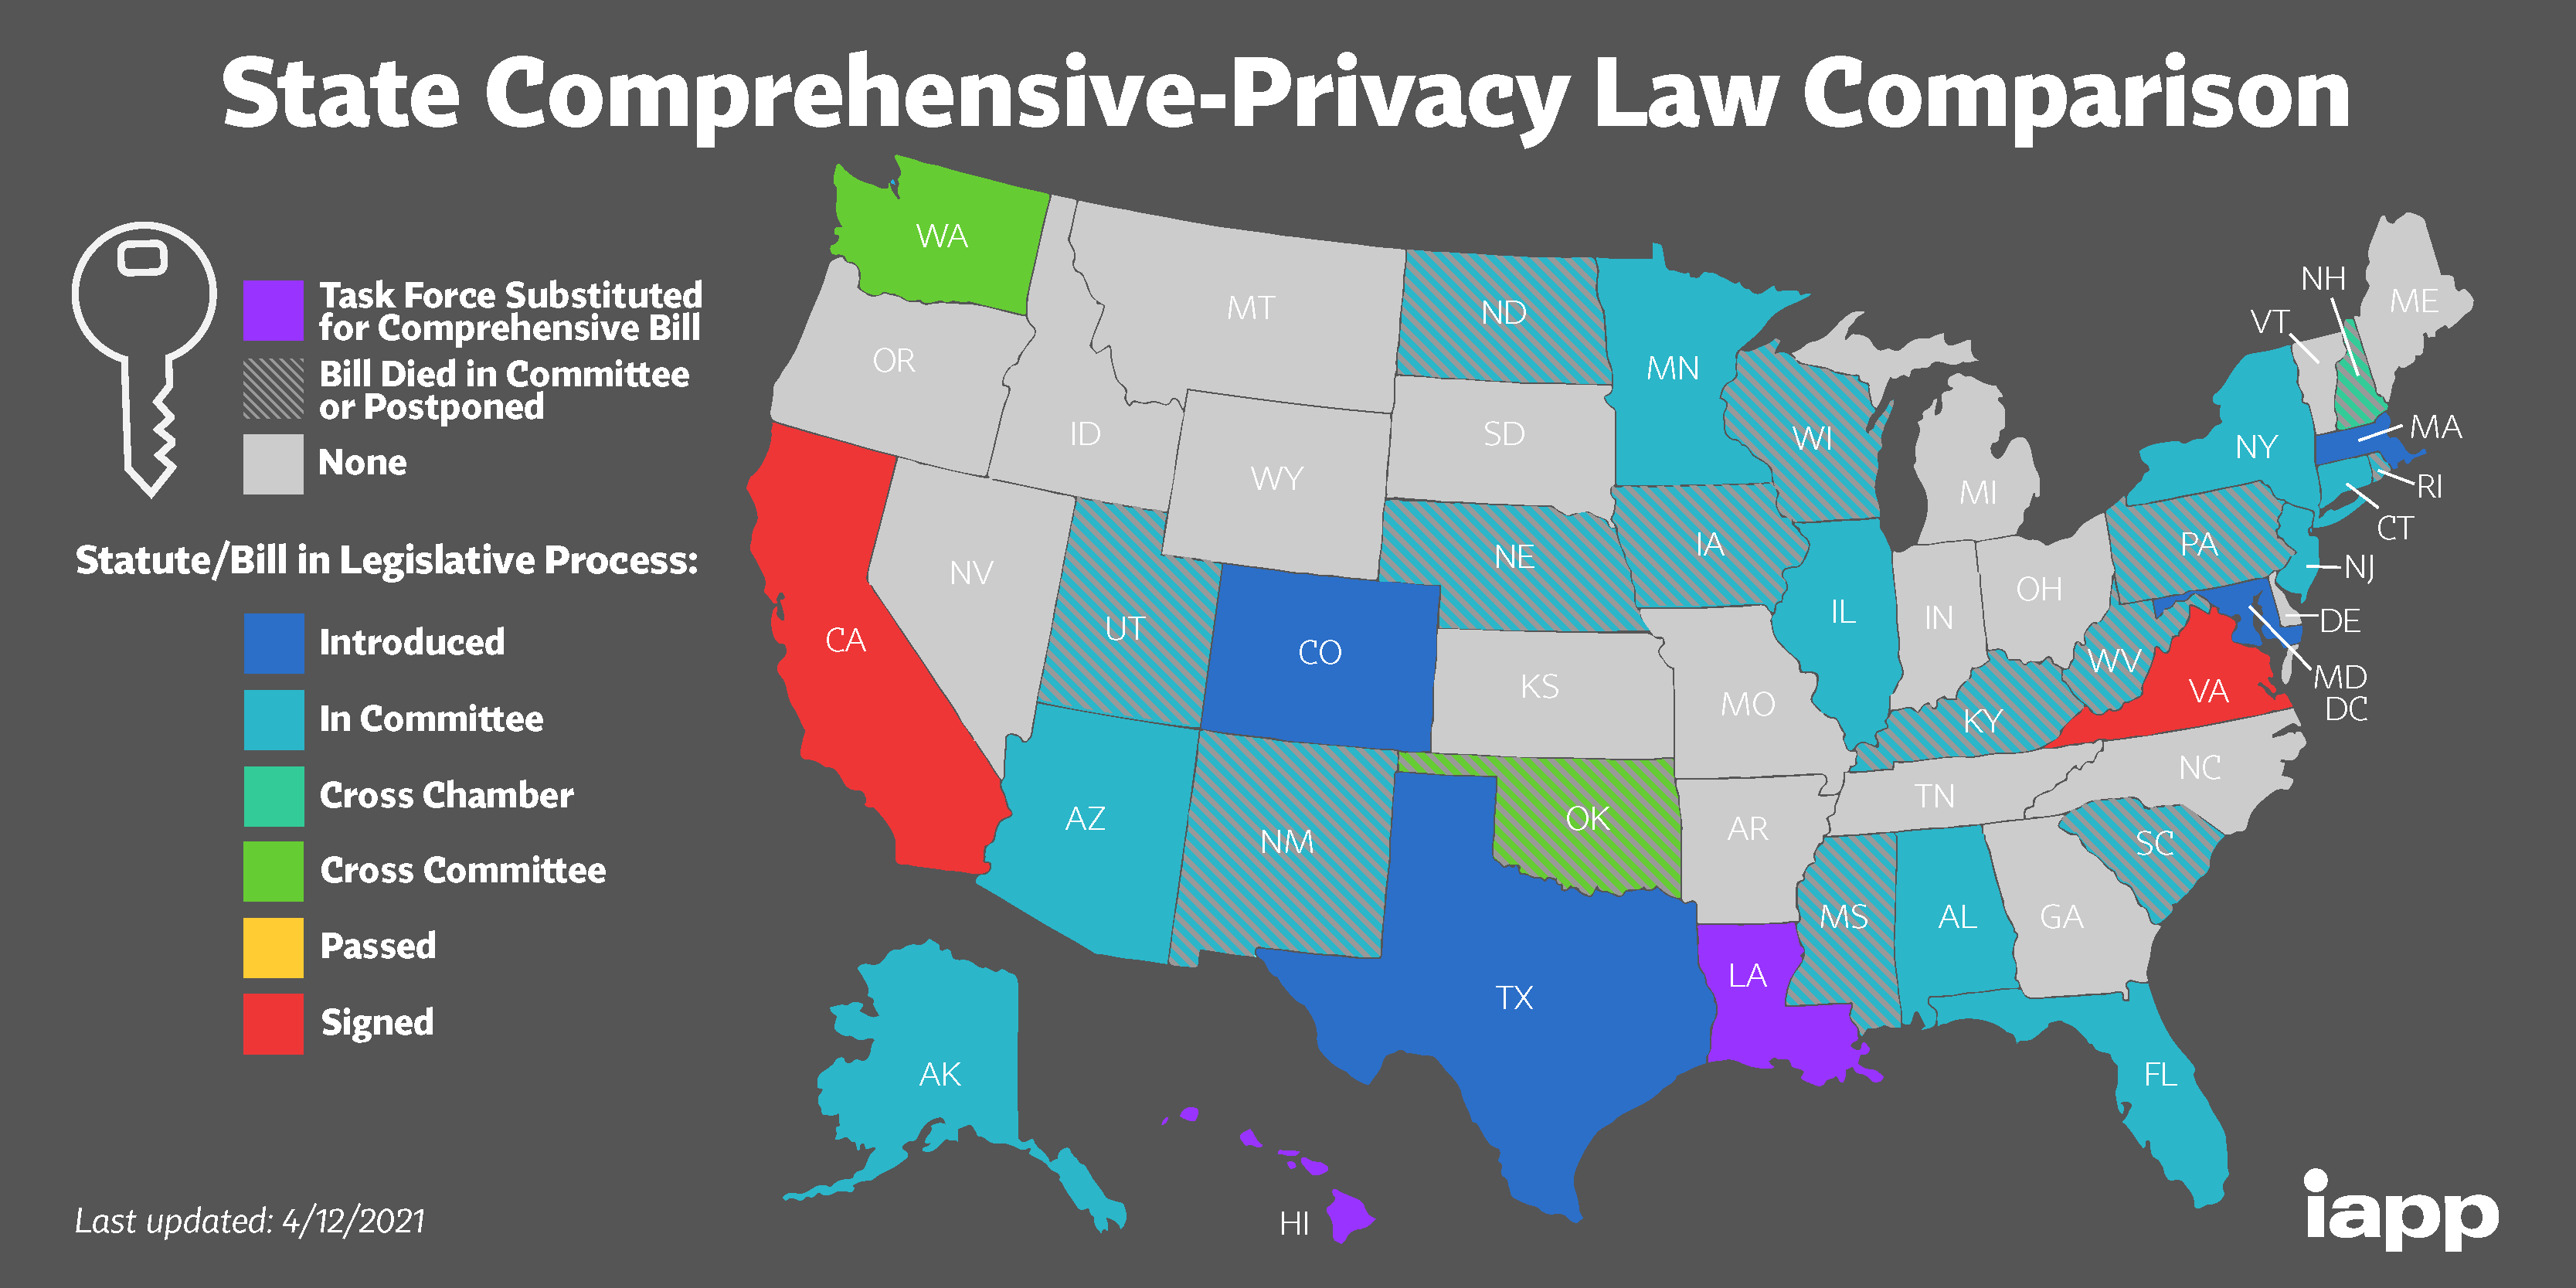 A map of the United States color coded to show which states are working on comprehensive data privacy laws